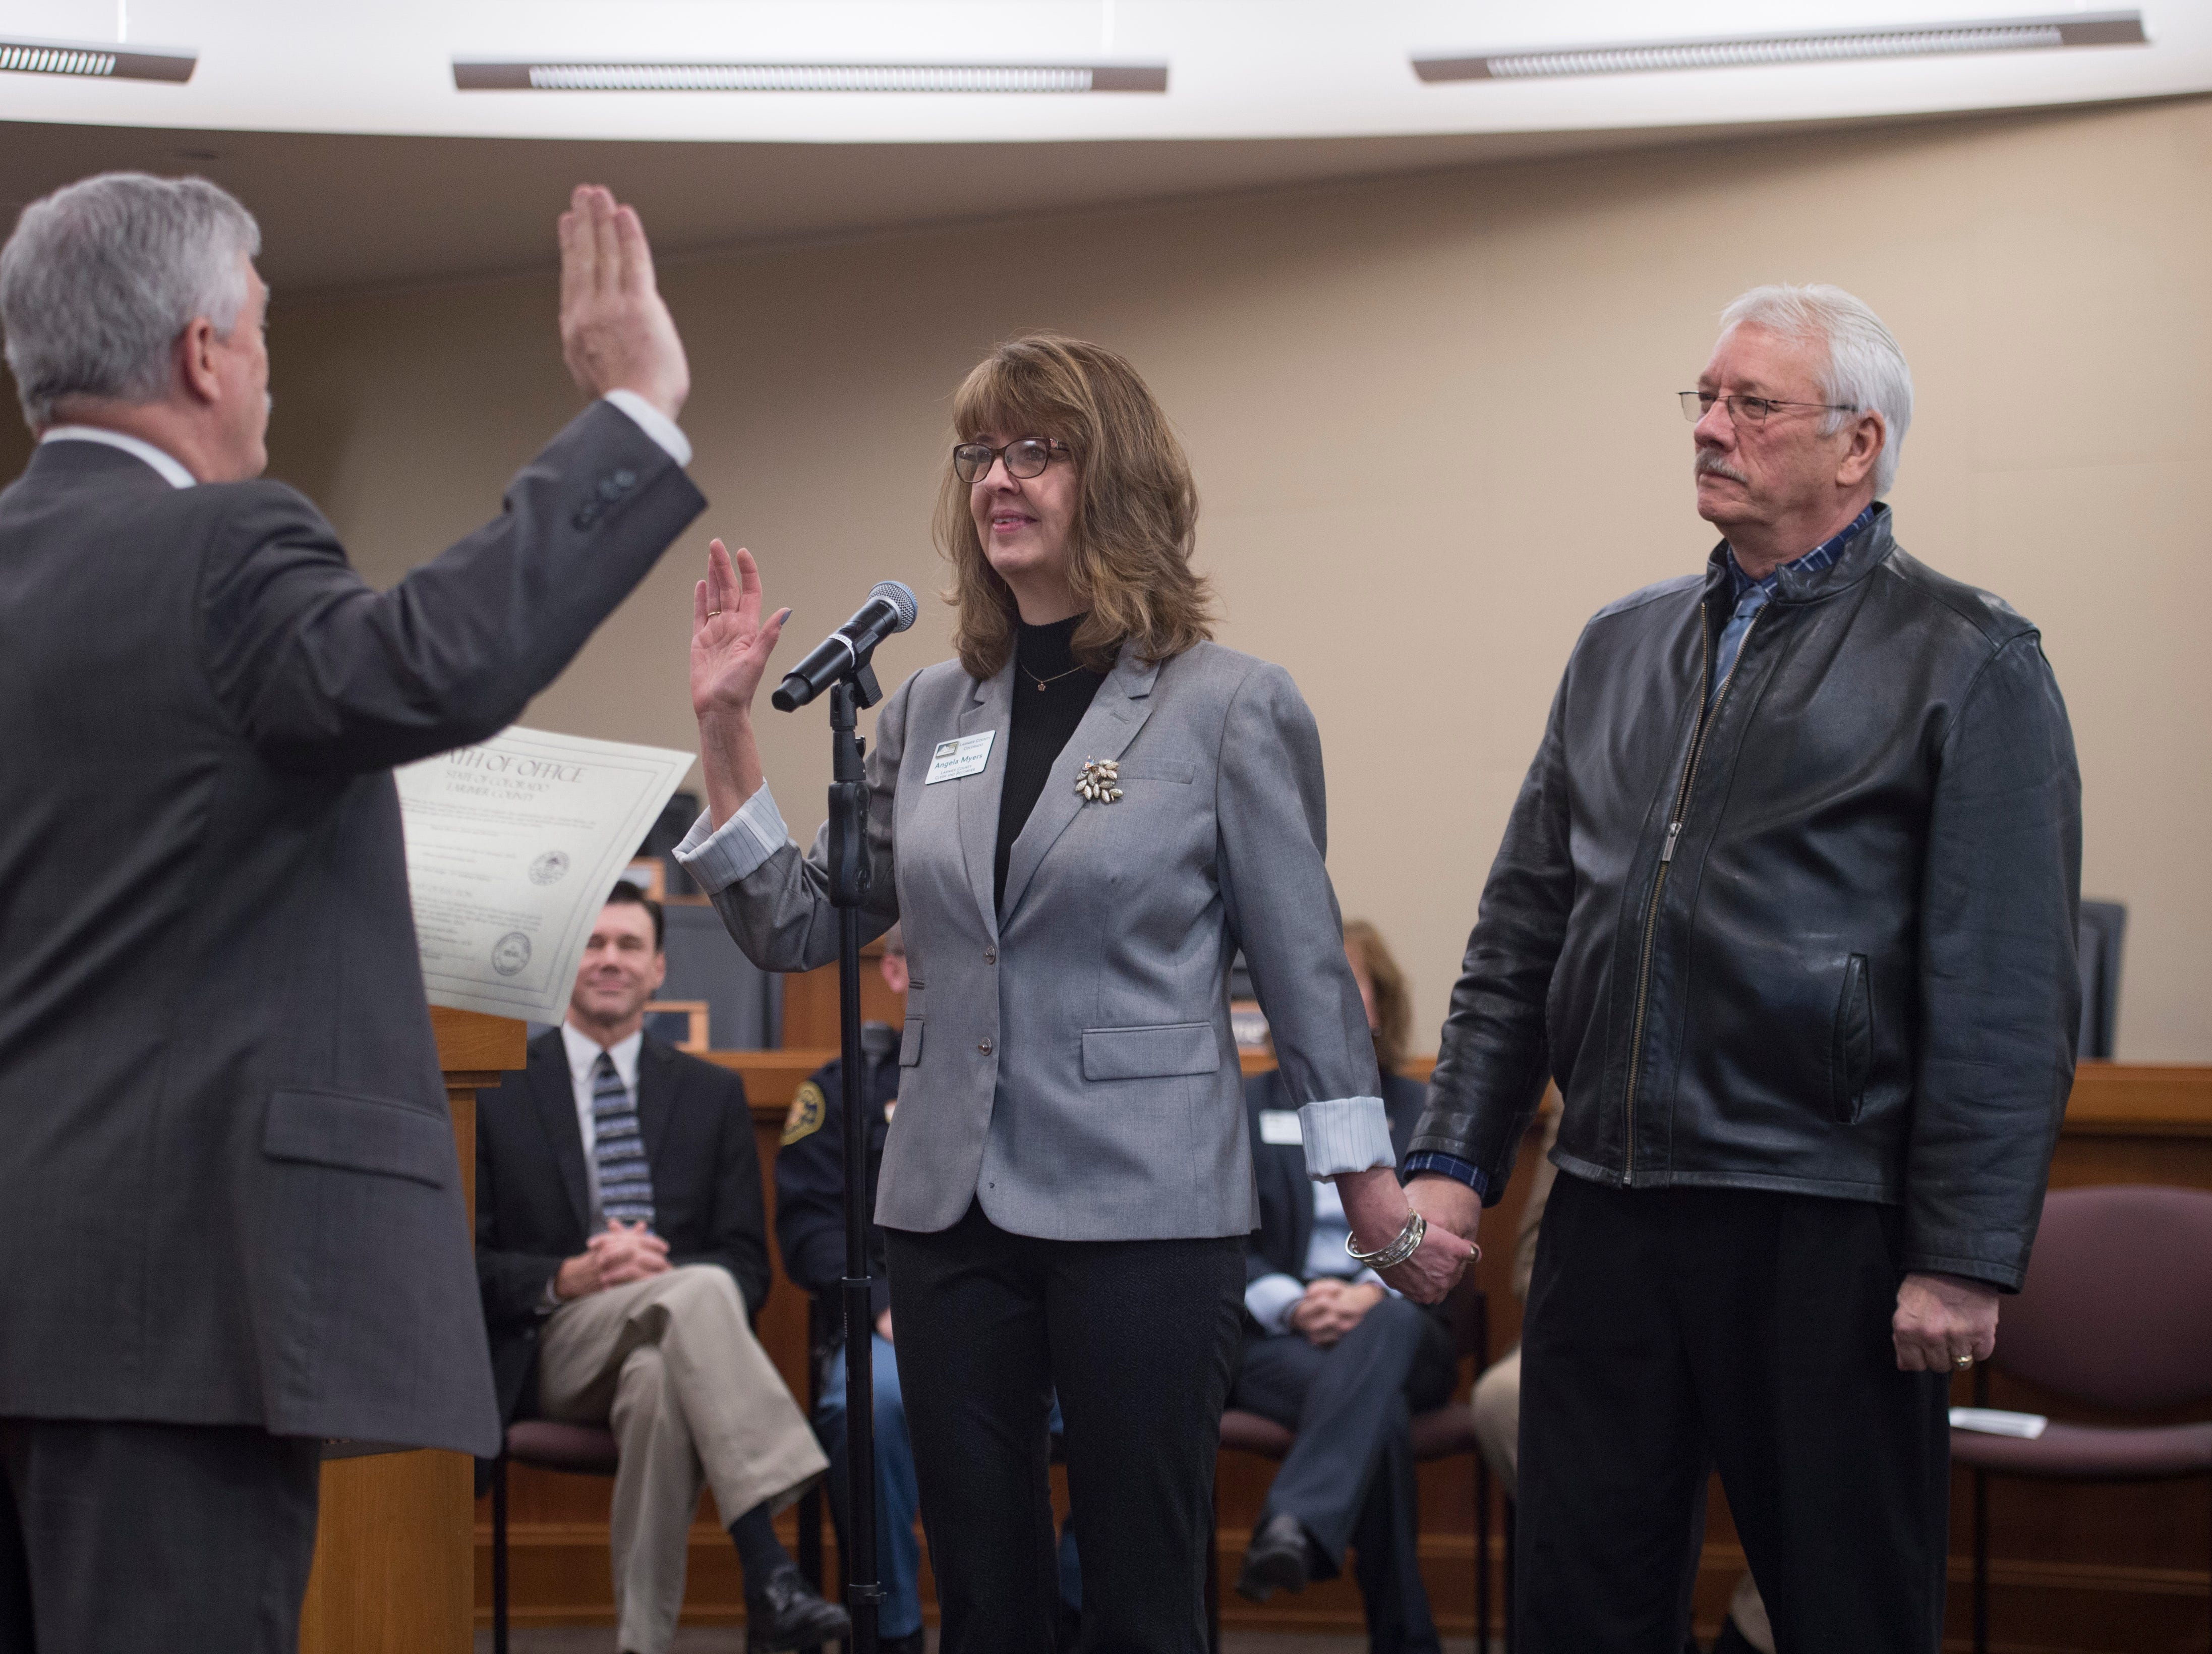 Larimer County Clerk Angela Meyers is sworn in for another term with her husband, Gary, at her side at the Larimer County Courthouse on Tuesday, January 8, 2019.